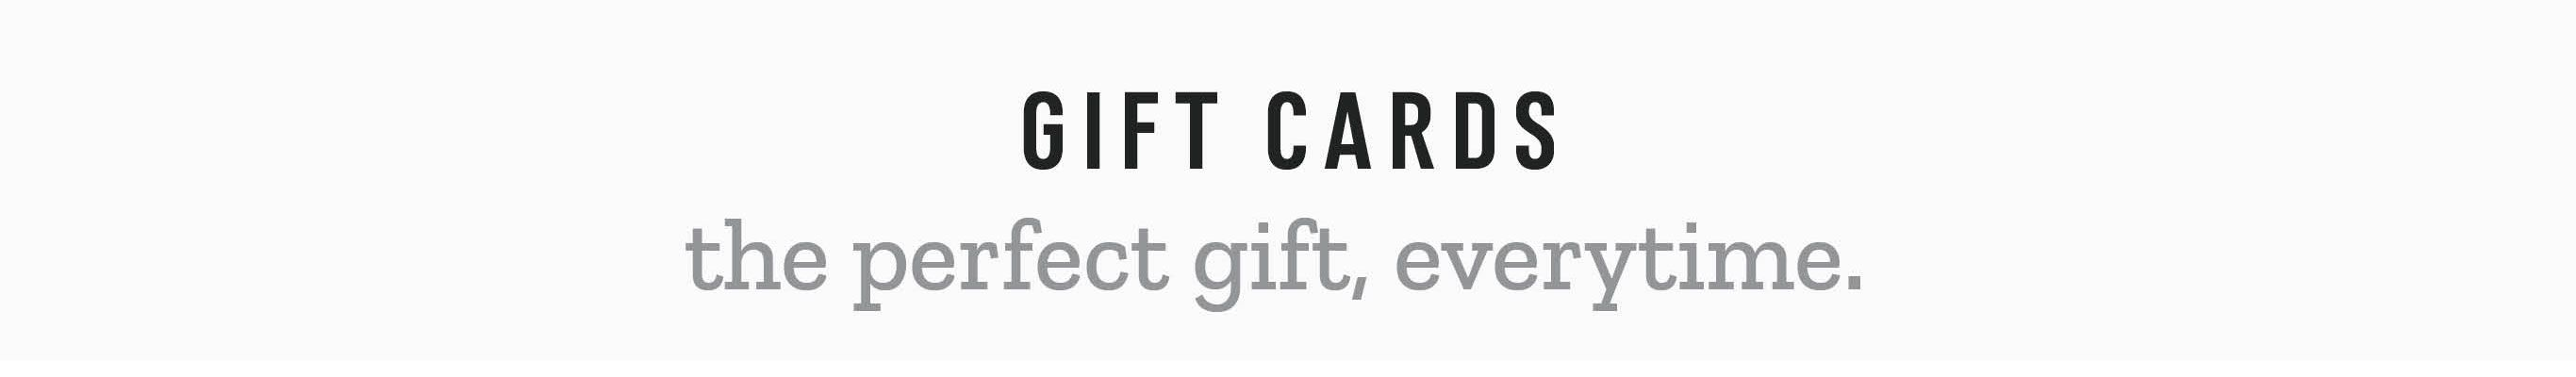 Gift Cards. The perfect gift, everytime.